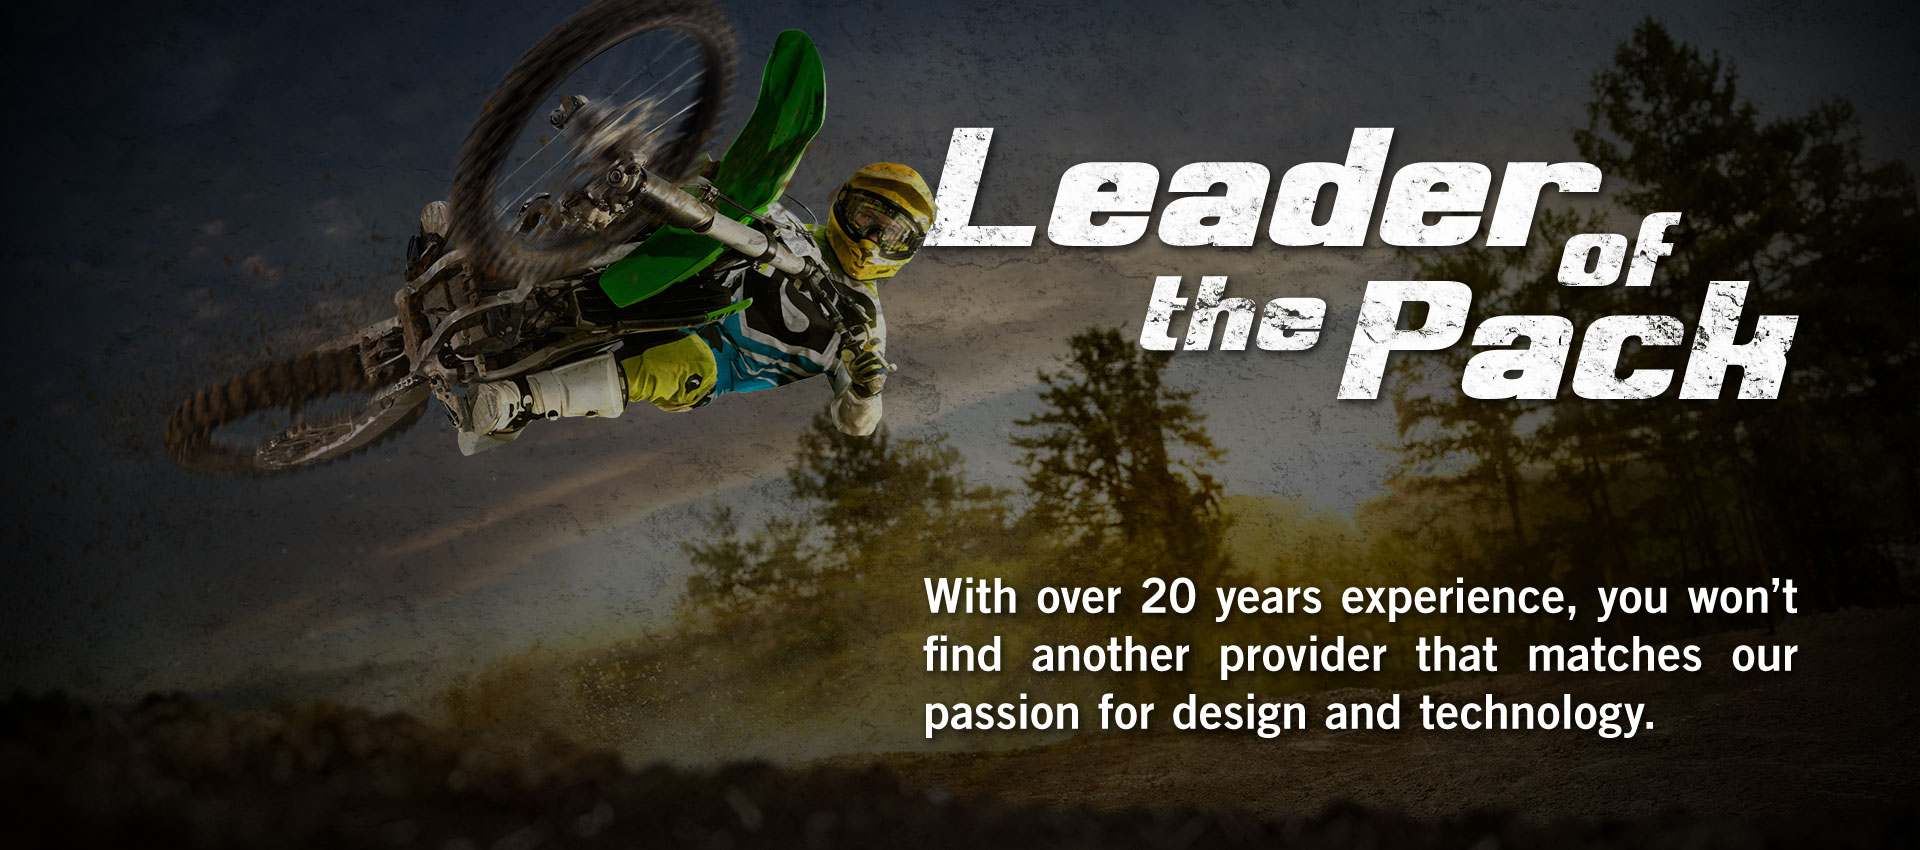 Leader of the Pack - DX1 has over 20 years experience in the Powersports industry